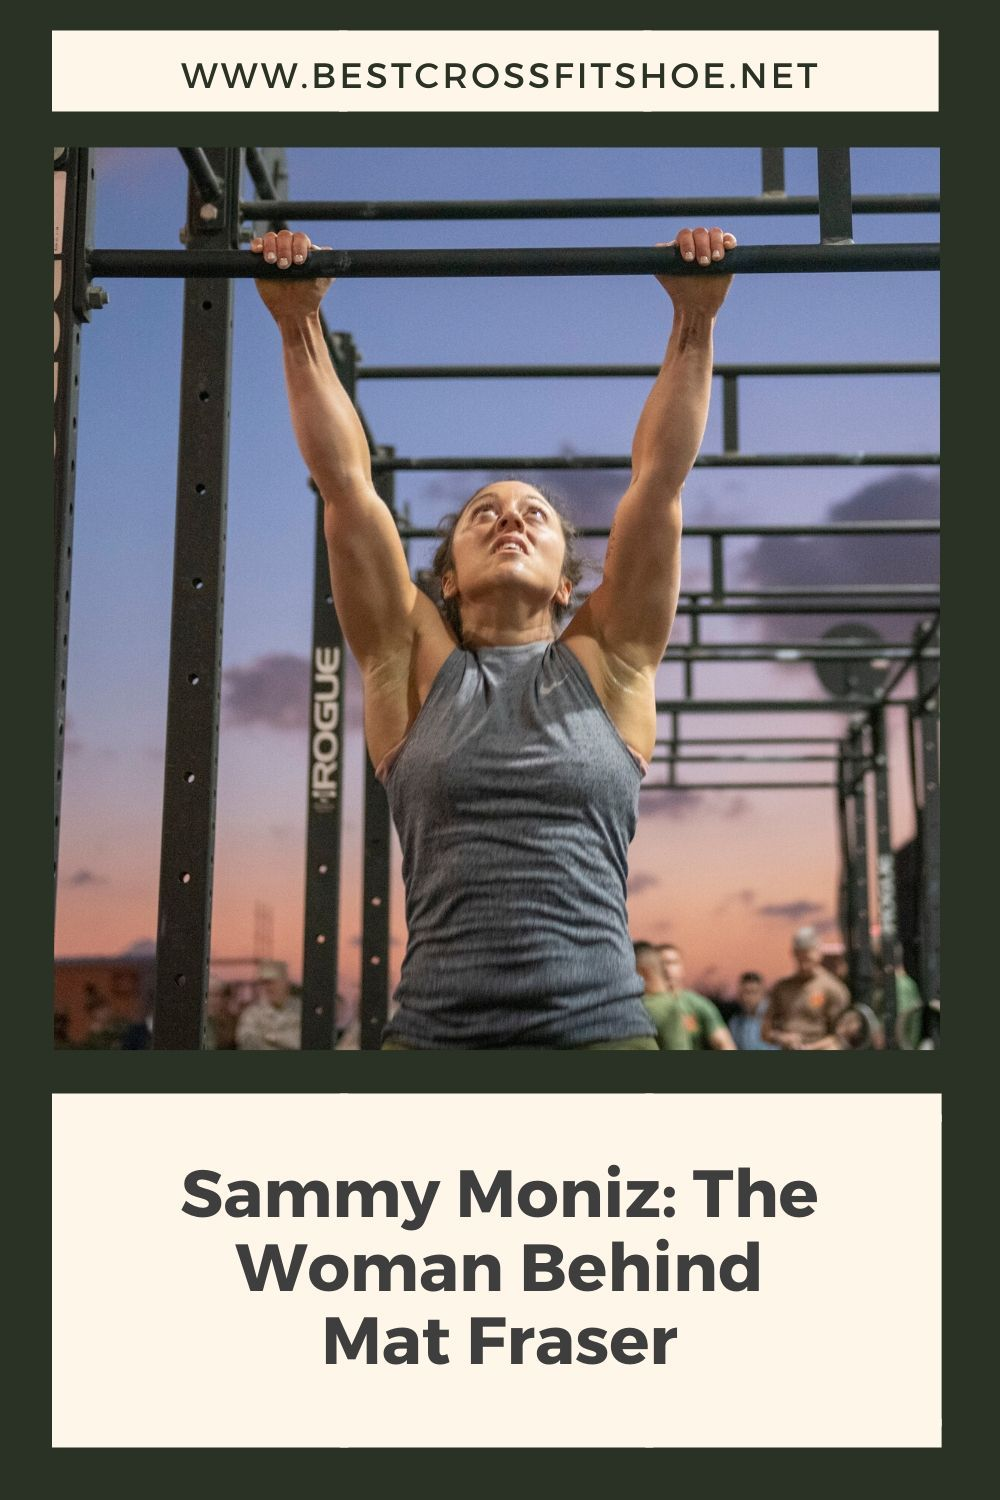 Find out all the details you need to know about Sammy Moniz, the woman behind Mat Fraser and the one...